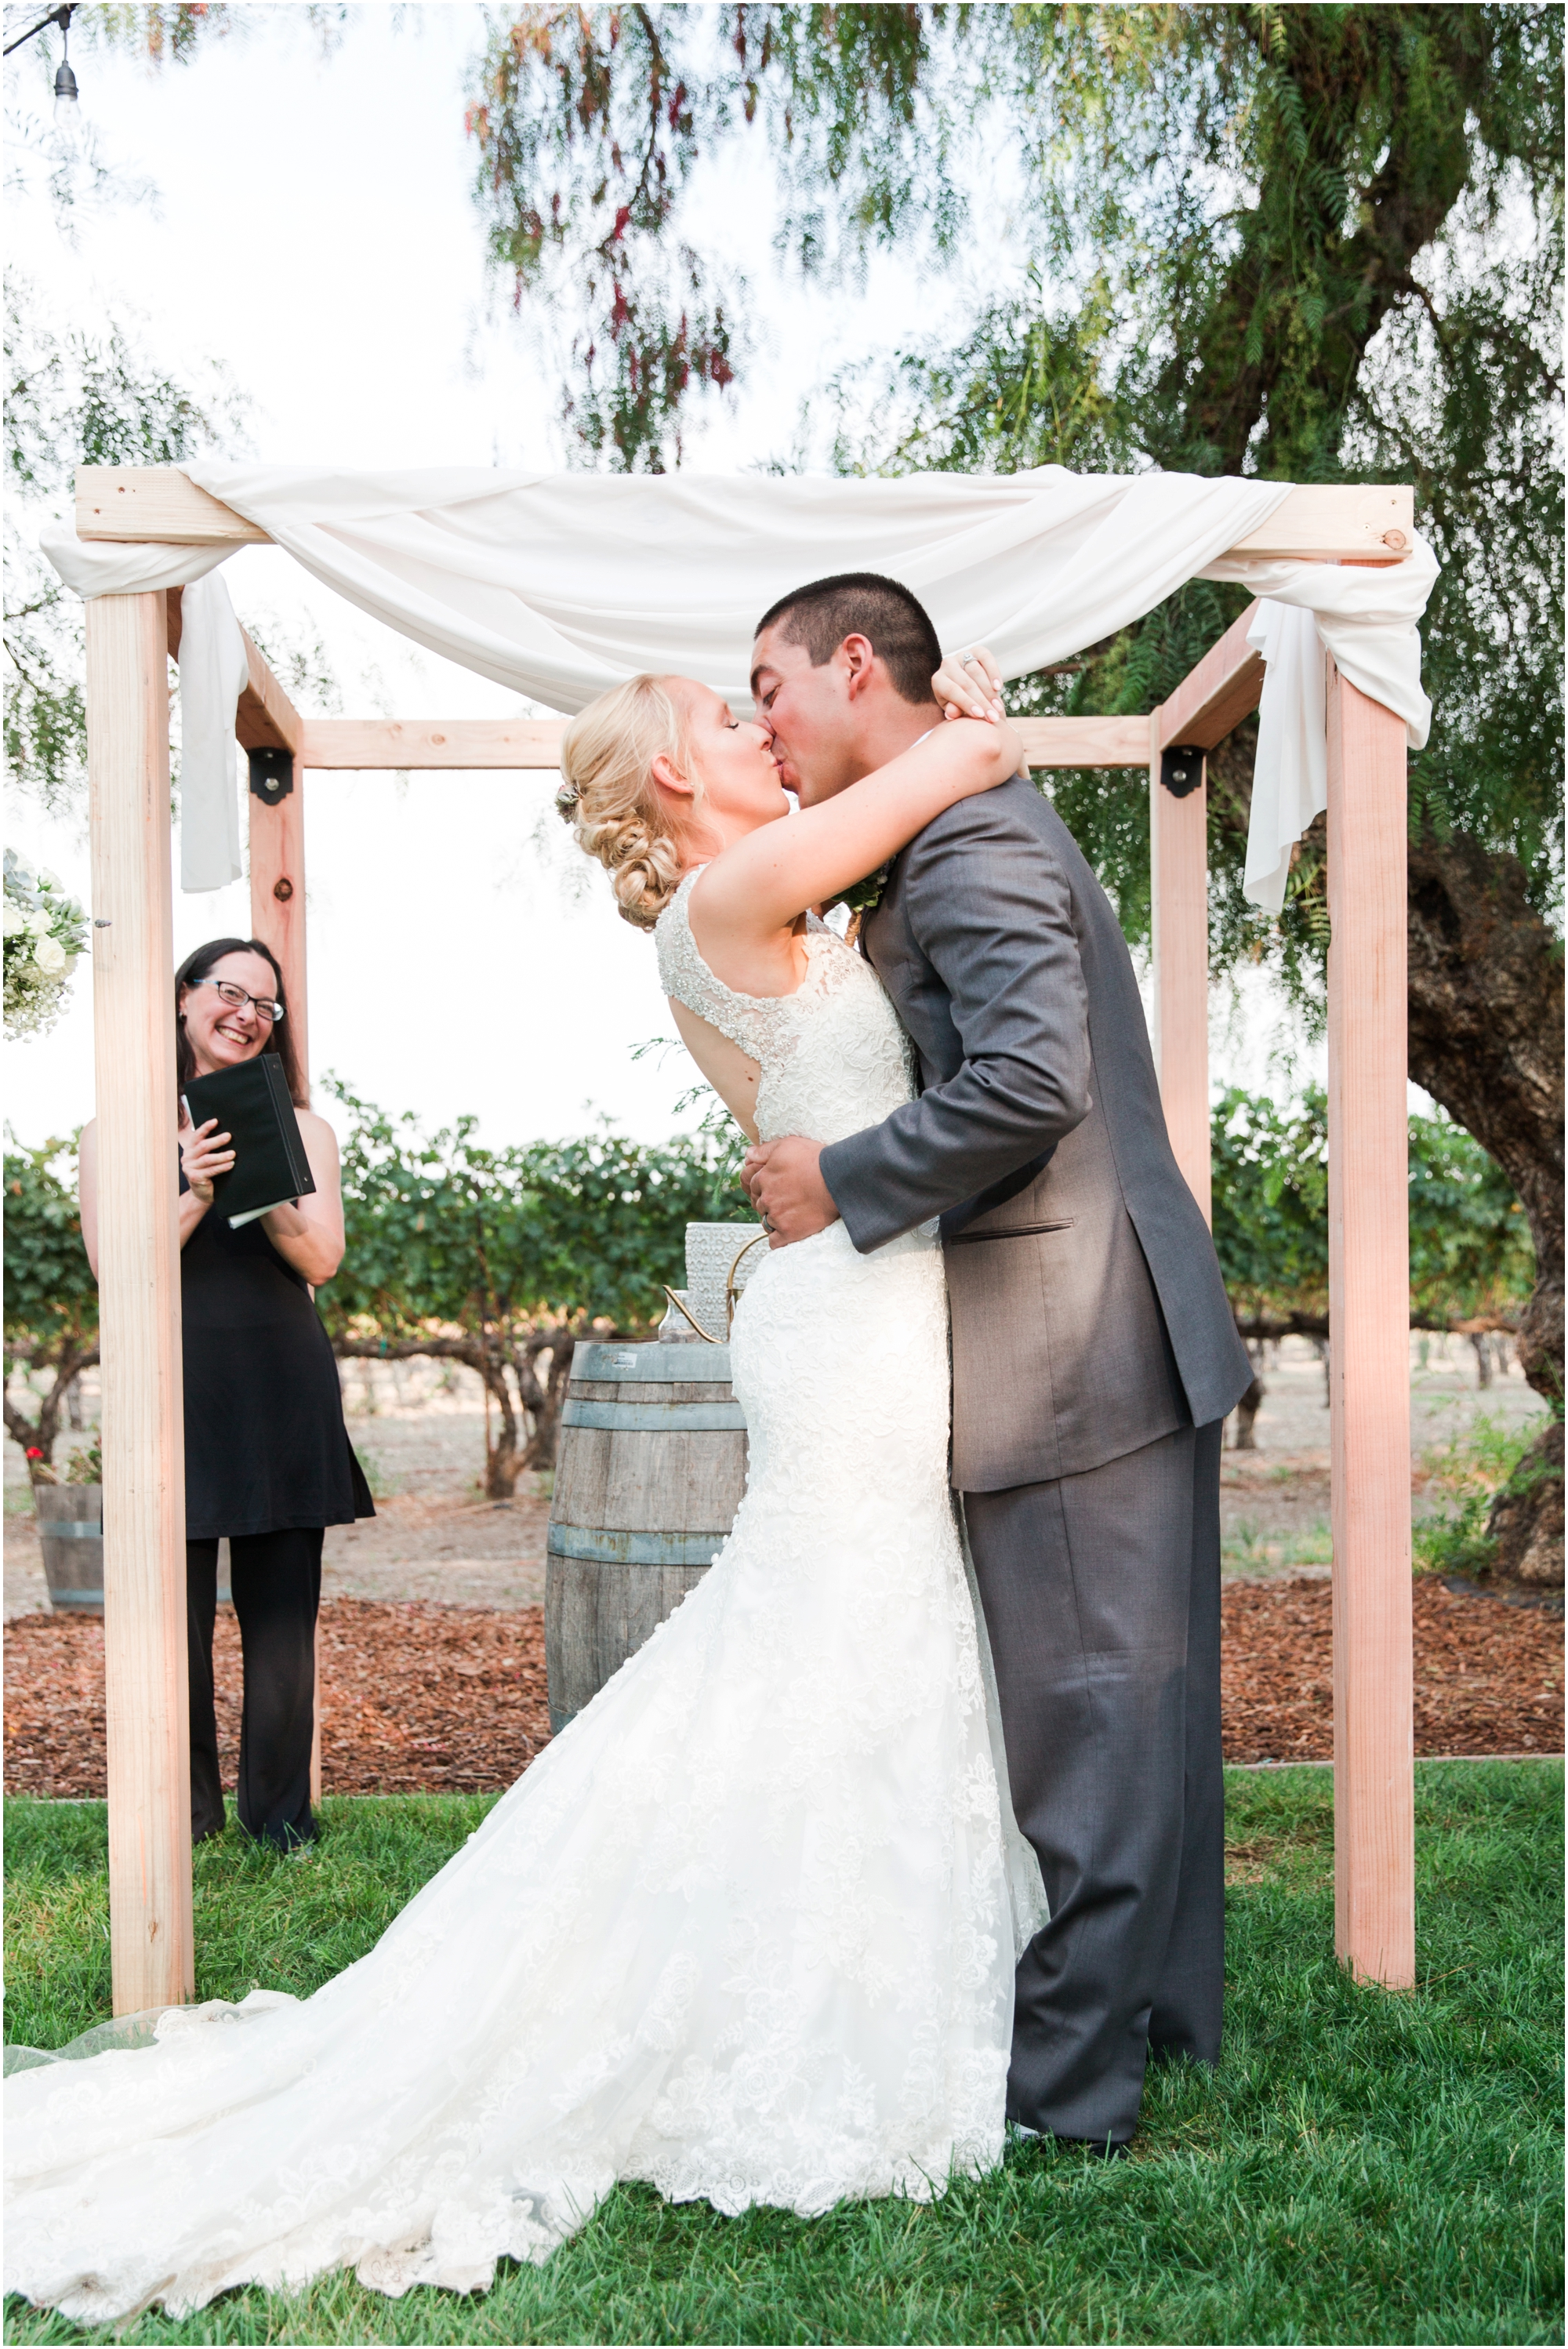 Retzlaff Winery wedding pictures by Briana Calderon Photography_2315.jpg